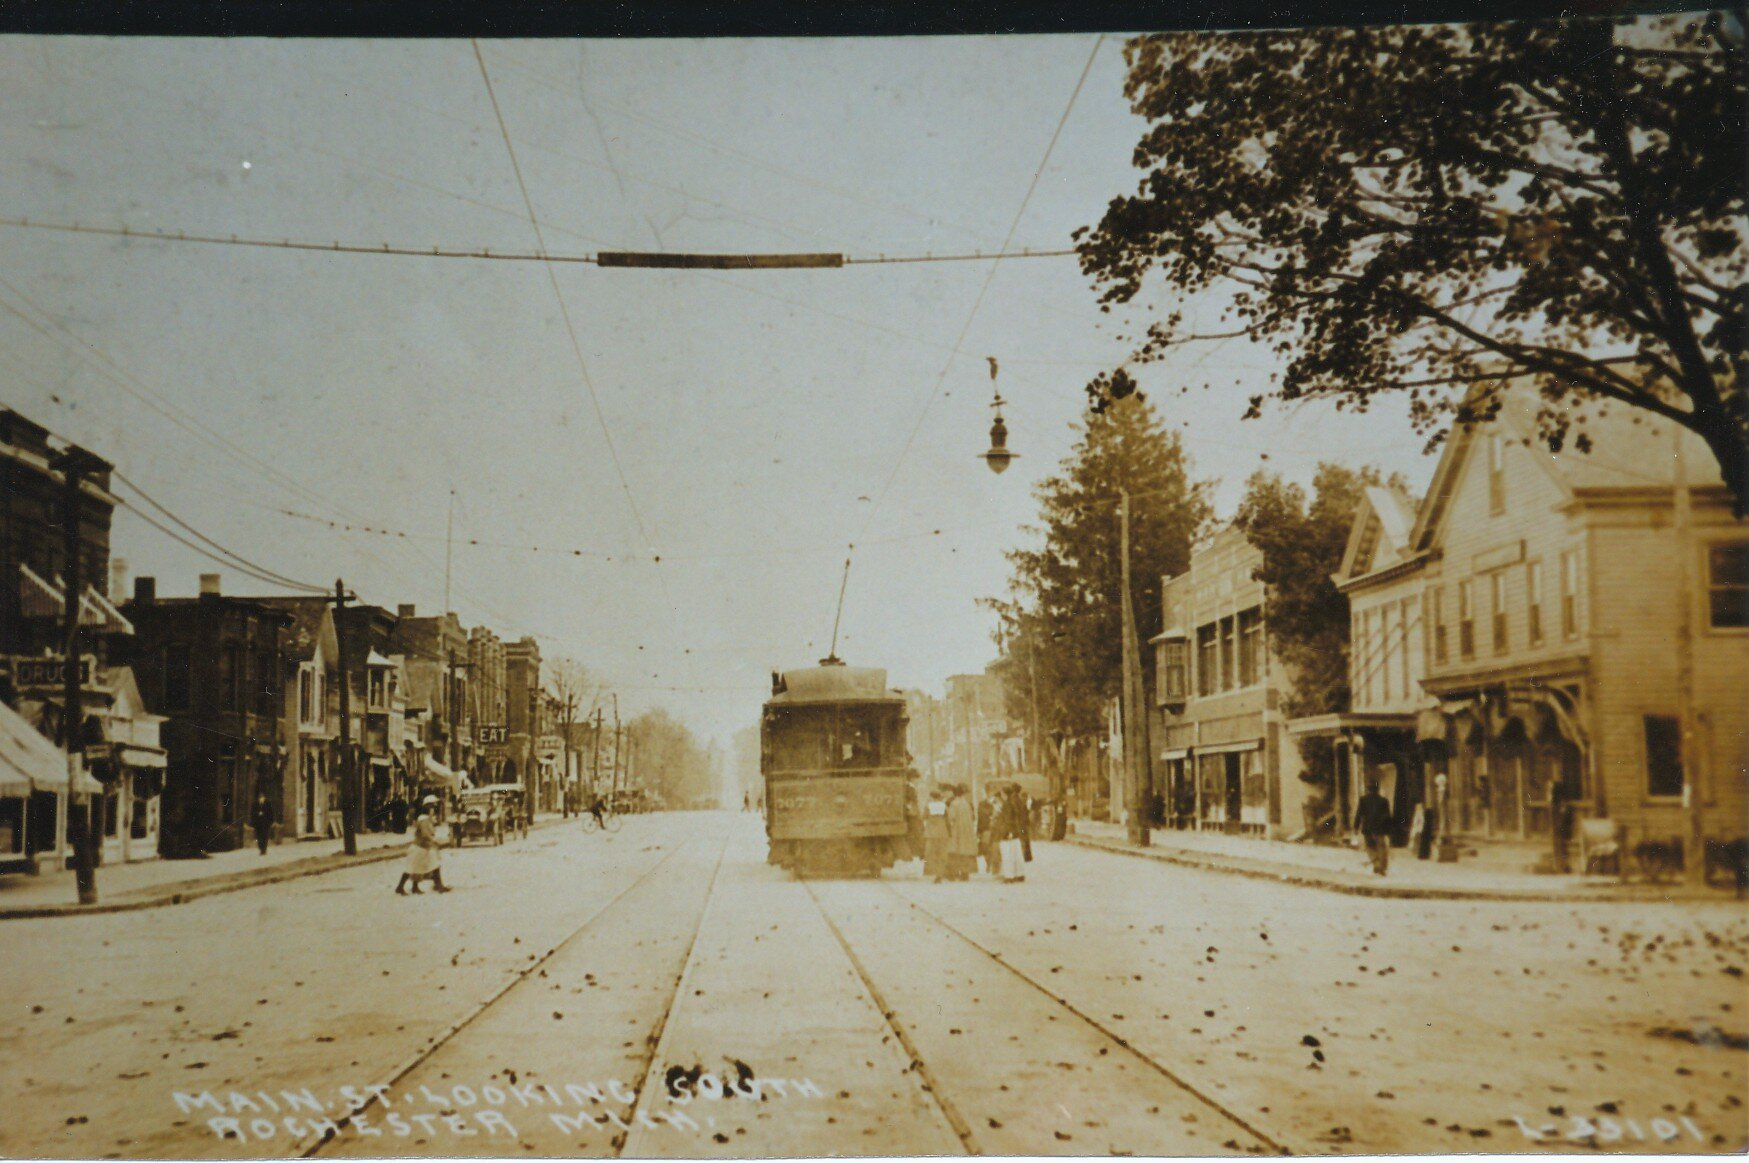 Looking south down Main Street at the Fifth St (now University Dr) intersection. The corner building on the right is the current location of Bean and Leaf.